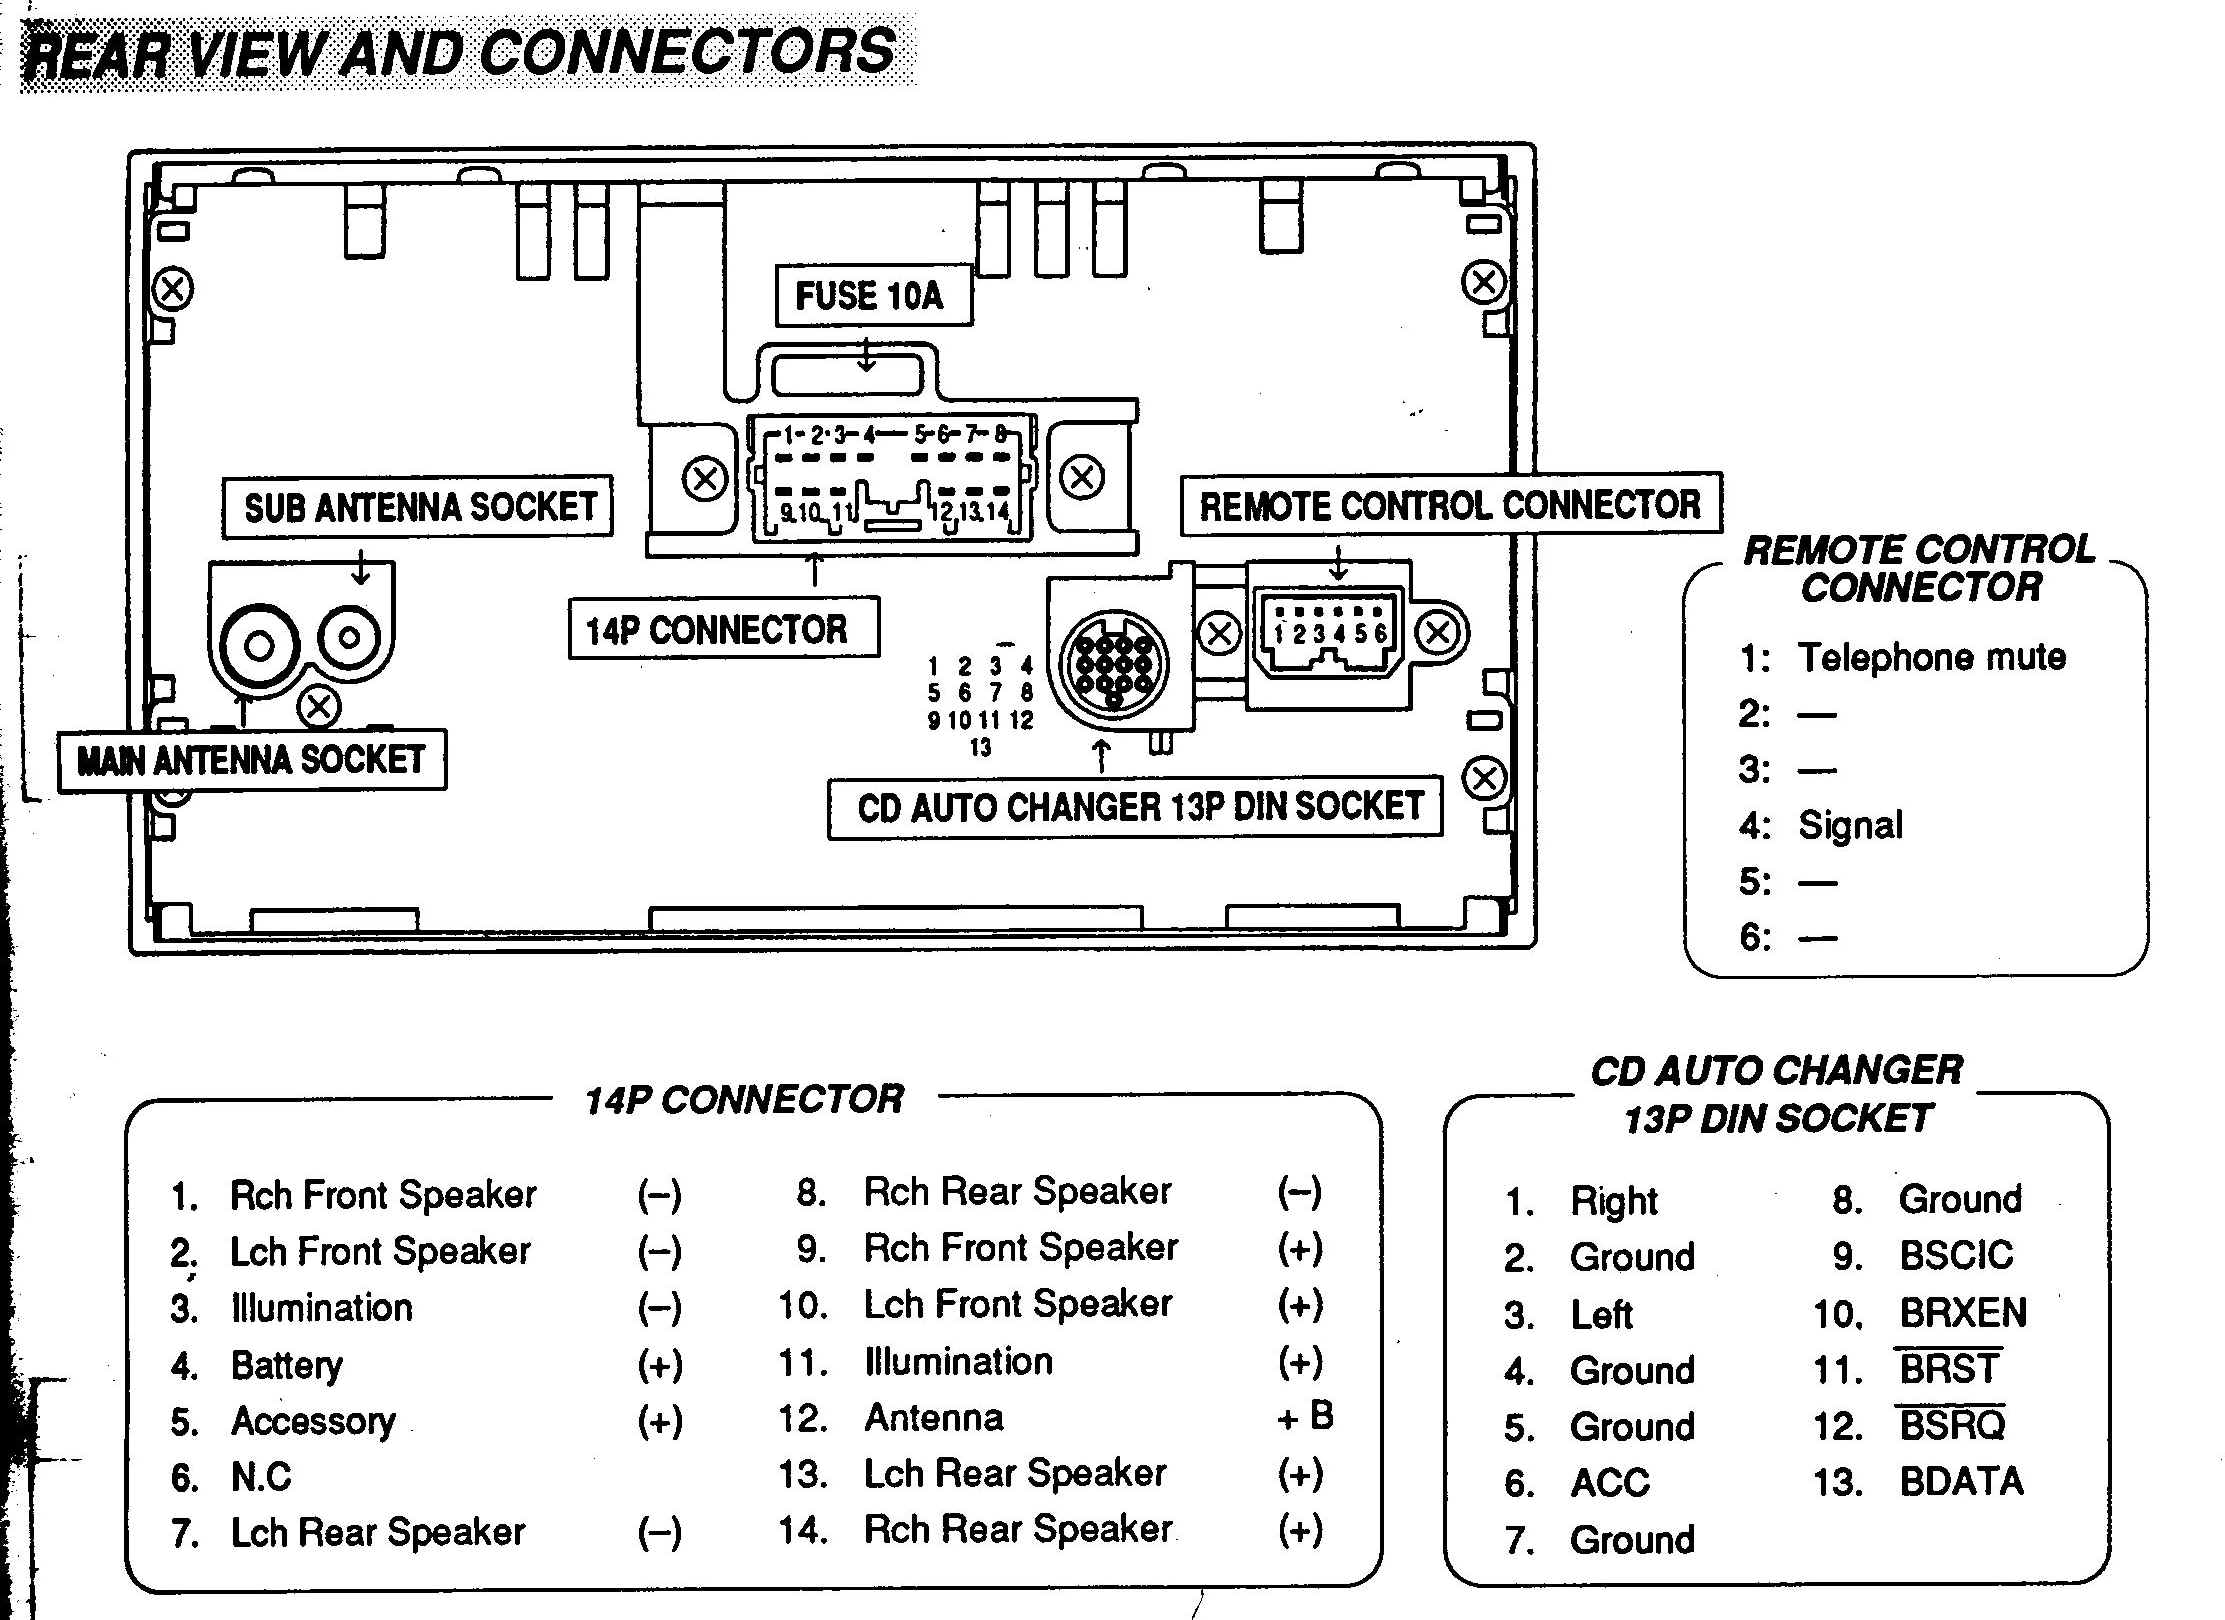 WireHarnessMit121003 mitsubishi radio wiring diagram mitsubishi eclipse wiring diagram mitsubishi pajero radio wiring diagram at aneh.co